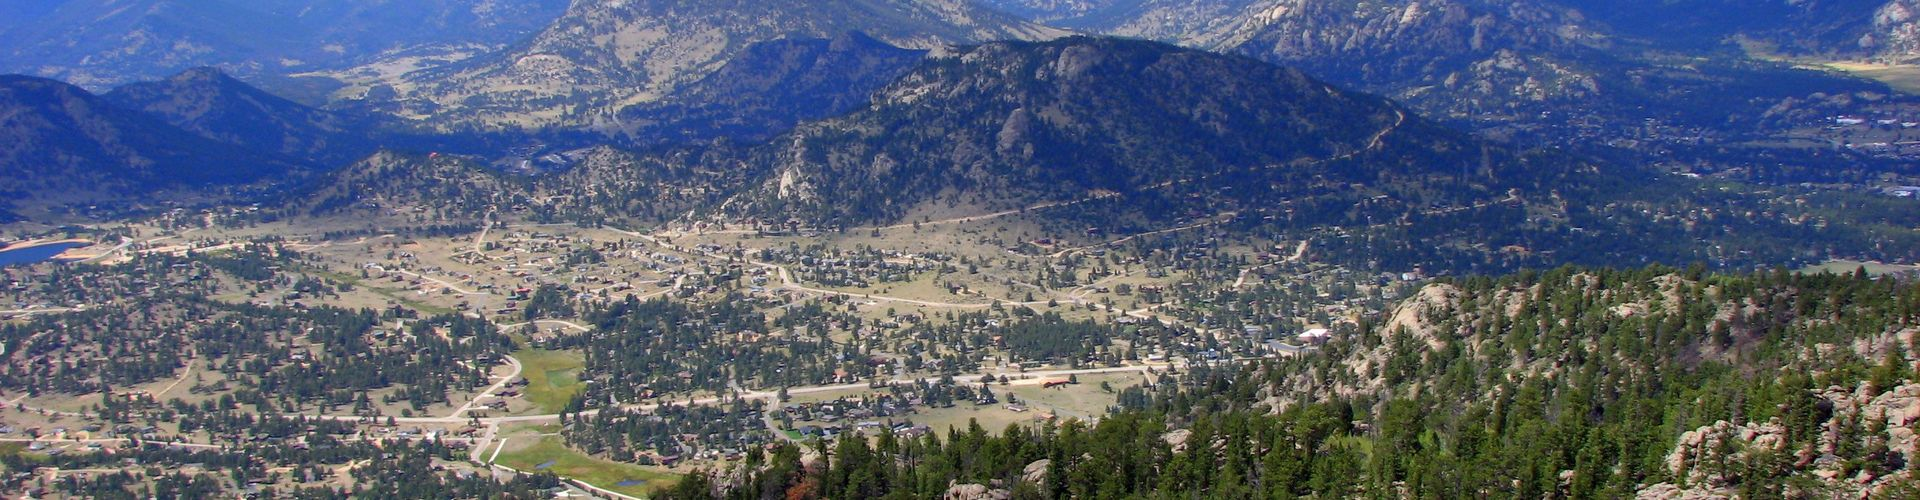 Estes Park Homes for Sale Photo 2